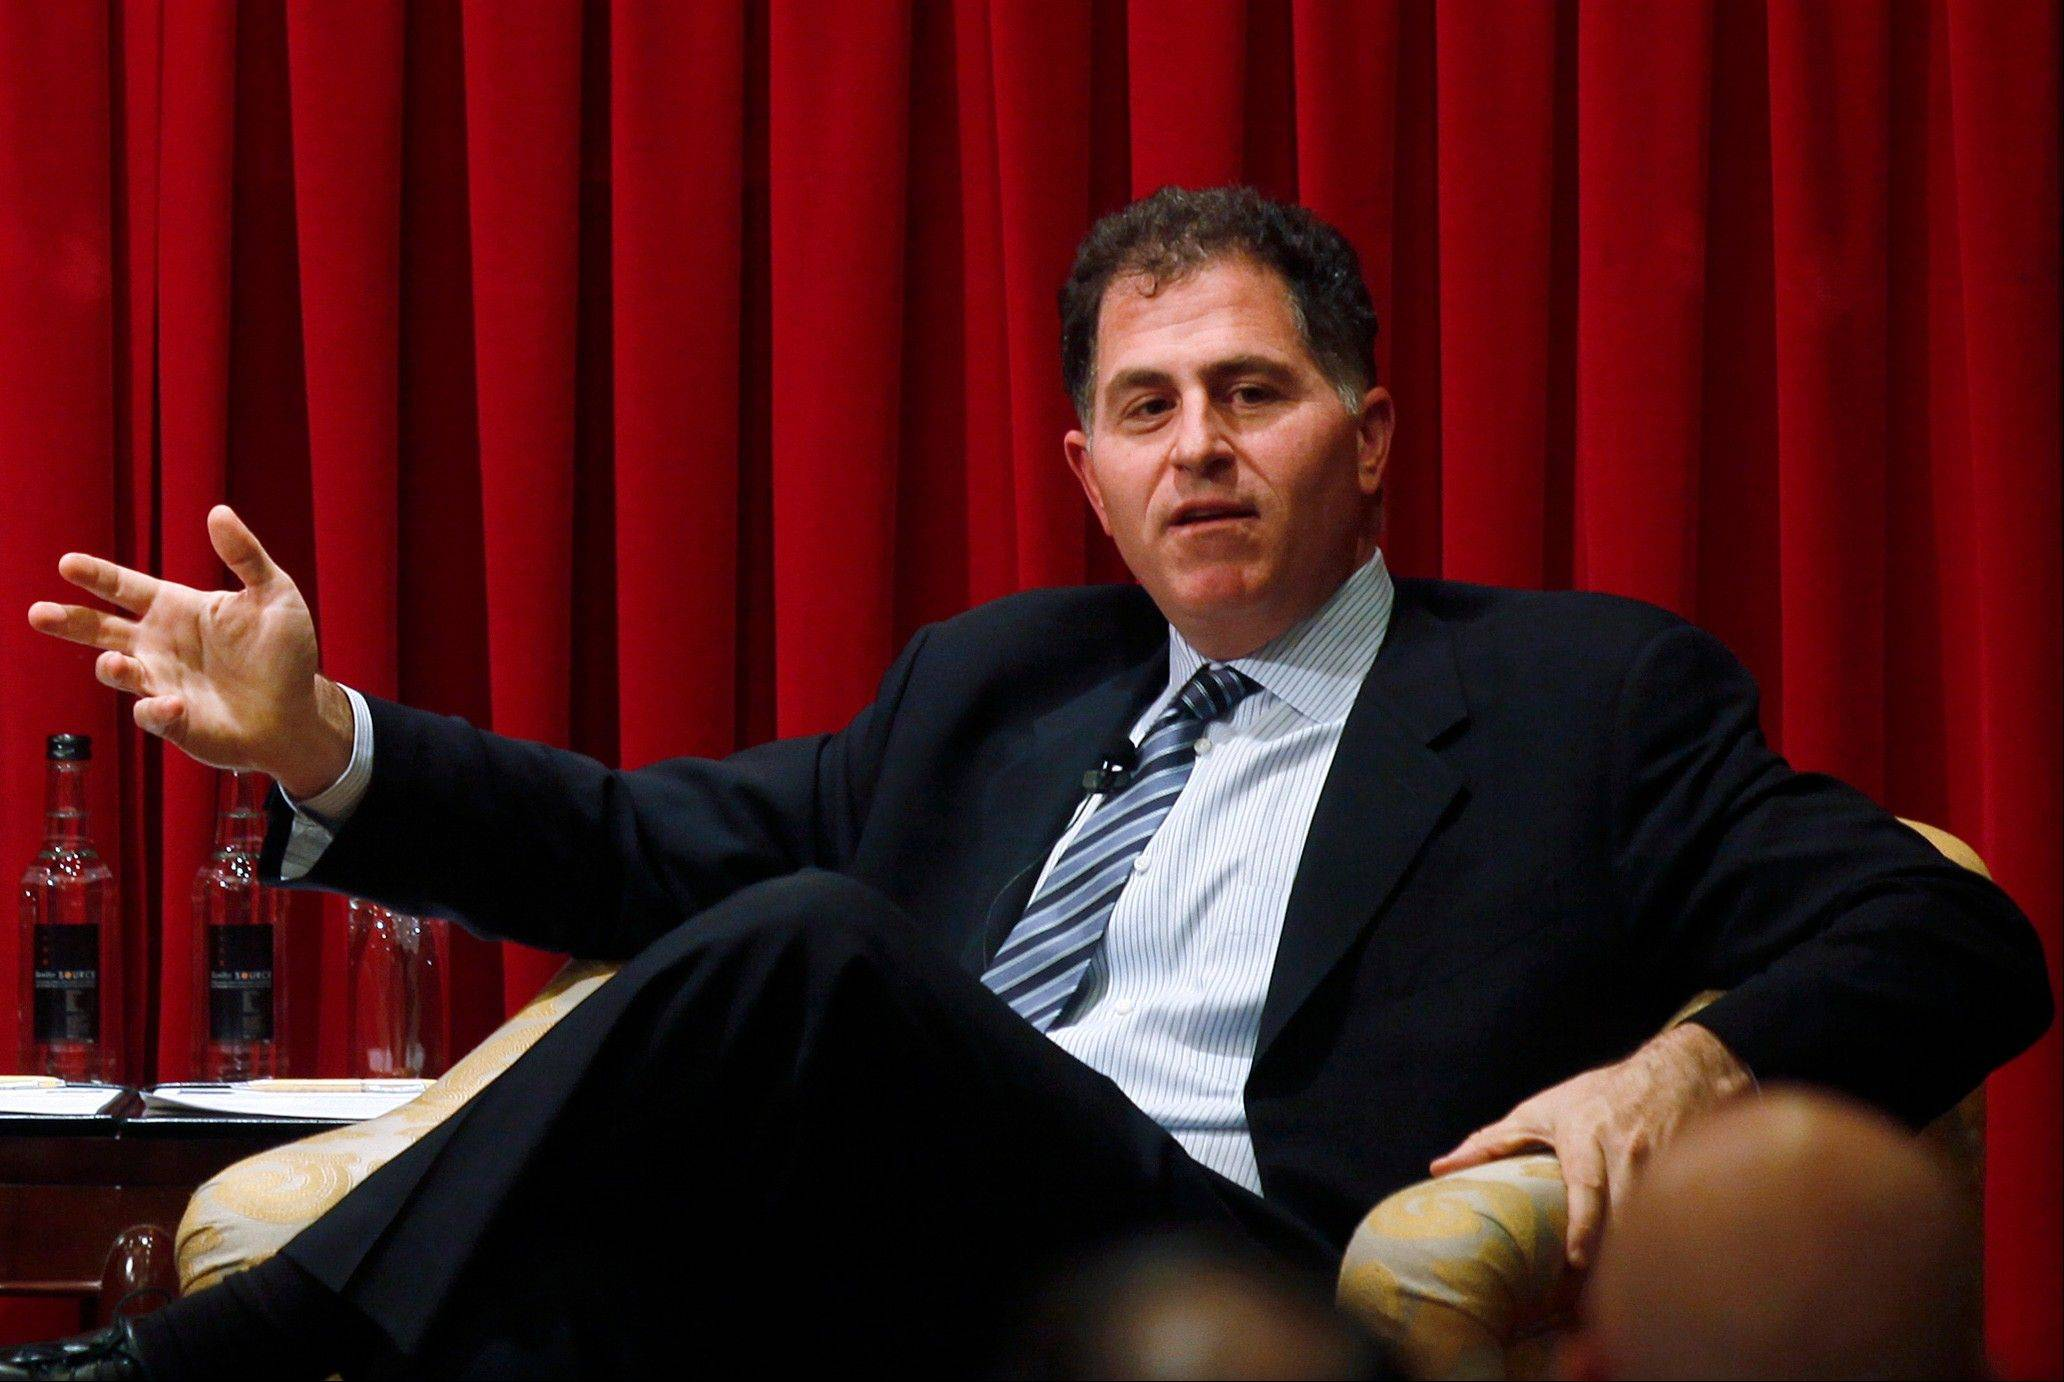 Associated Press/Nov. 2, 2010 Michael Dell, chairman and chief executive officer of Dell Inc.